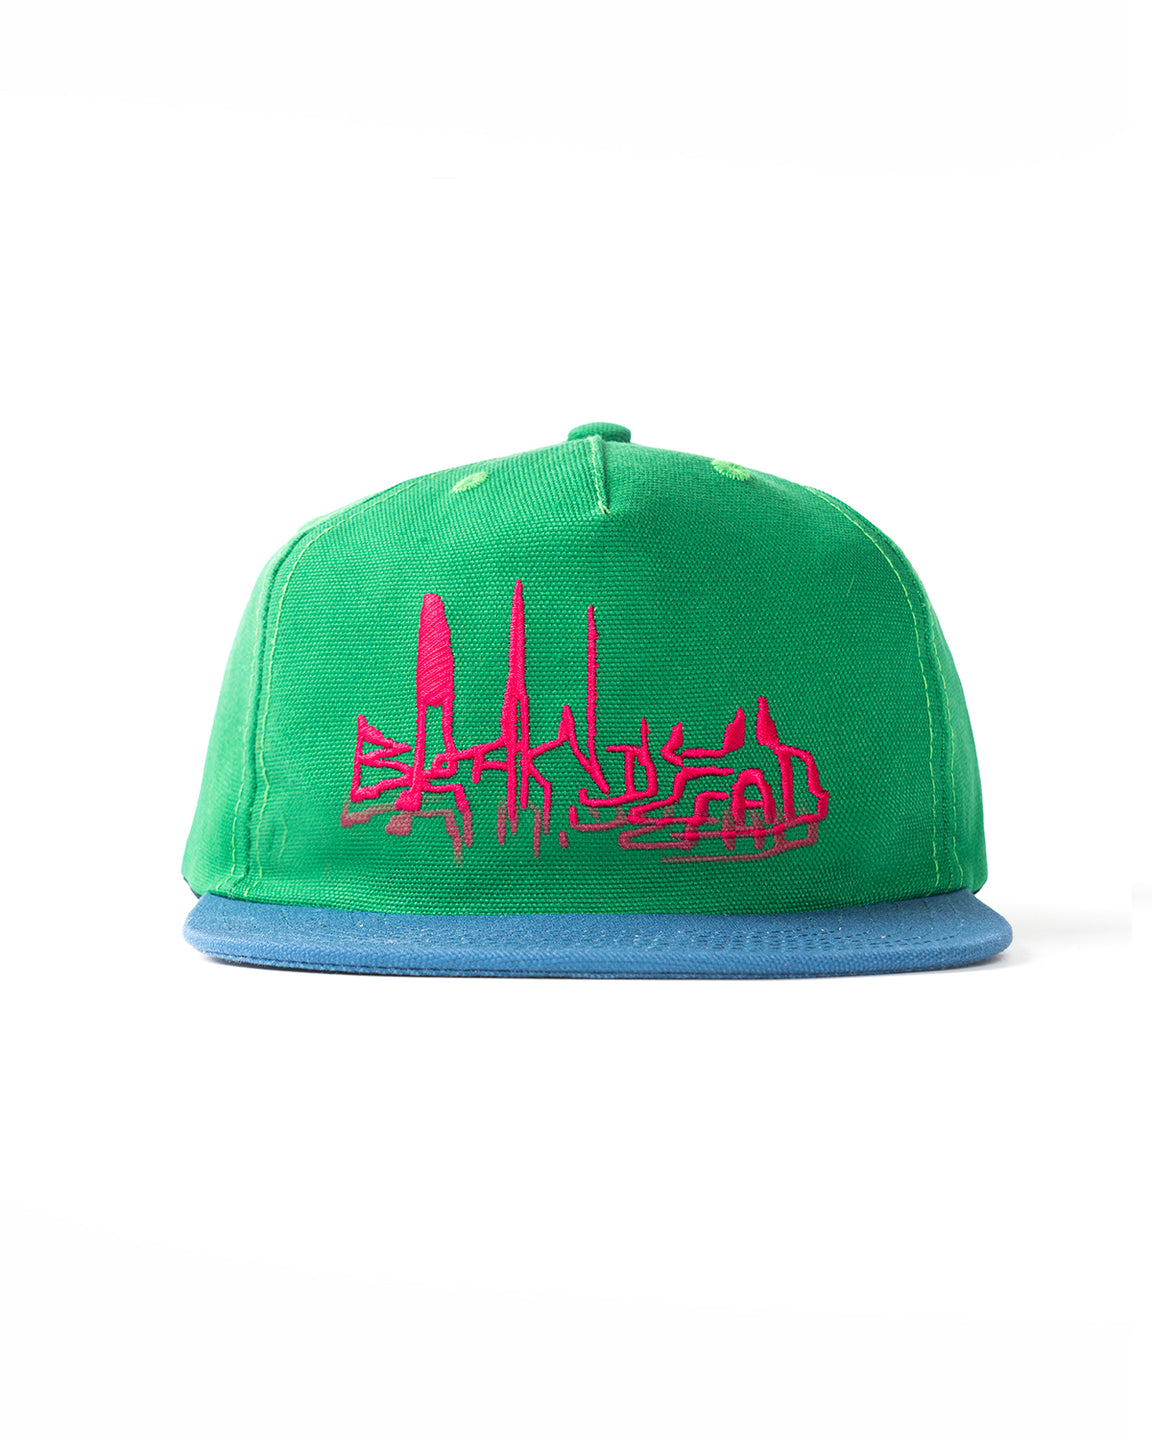 Distorted Text Five Panel Strapback - Green